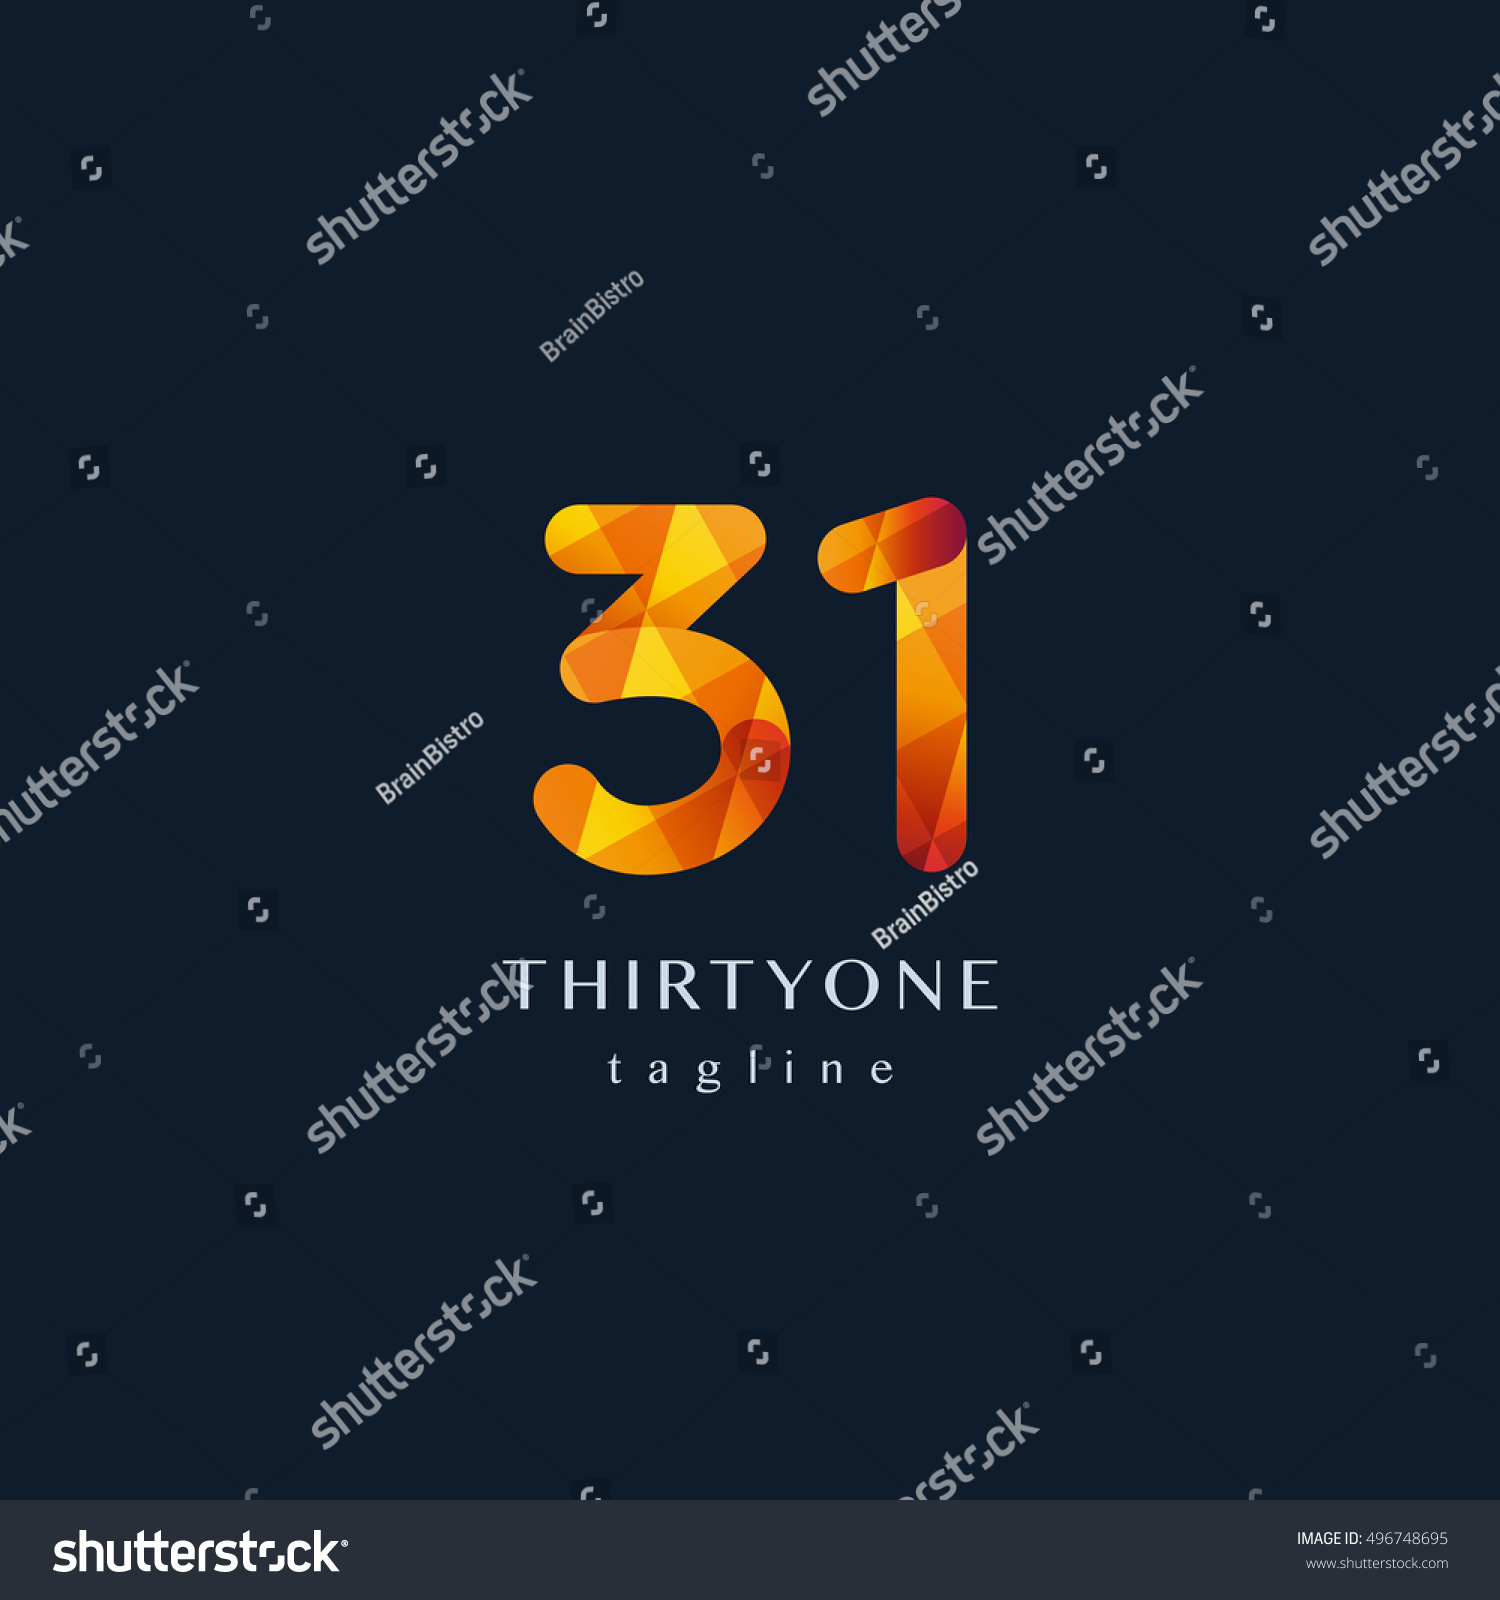 Number 33 free picture of the number thirty three - Number Thirty One 31 Logo 31 Icon Filled With Geometric Pattern Vector Element